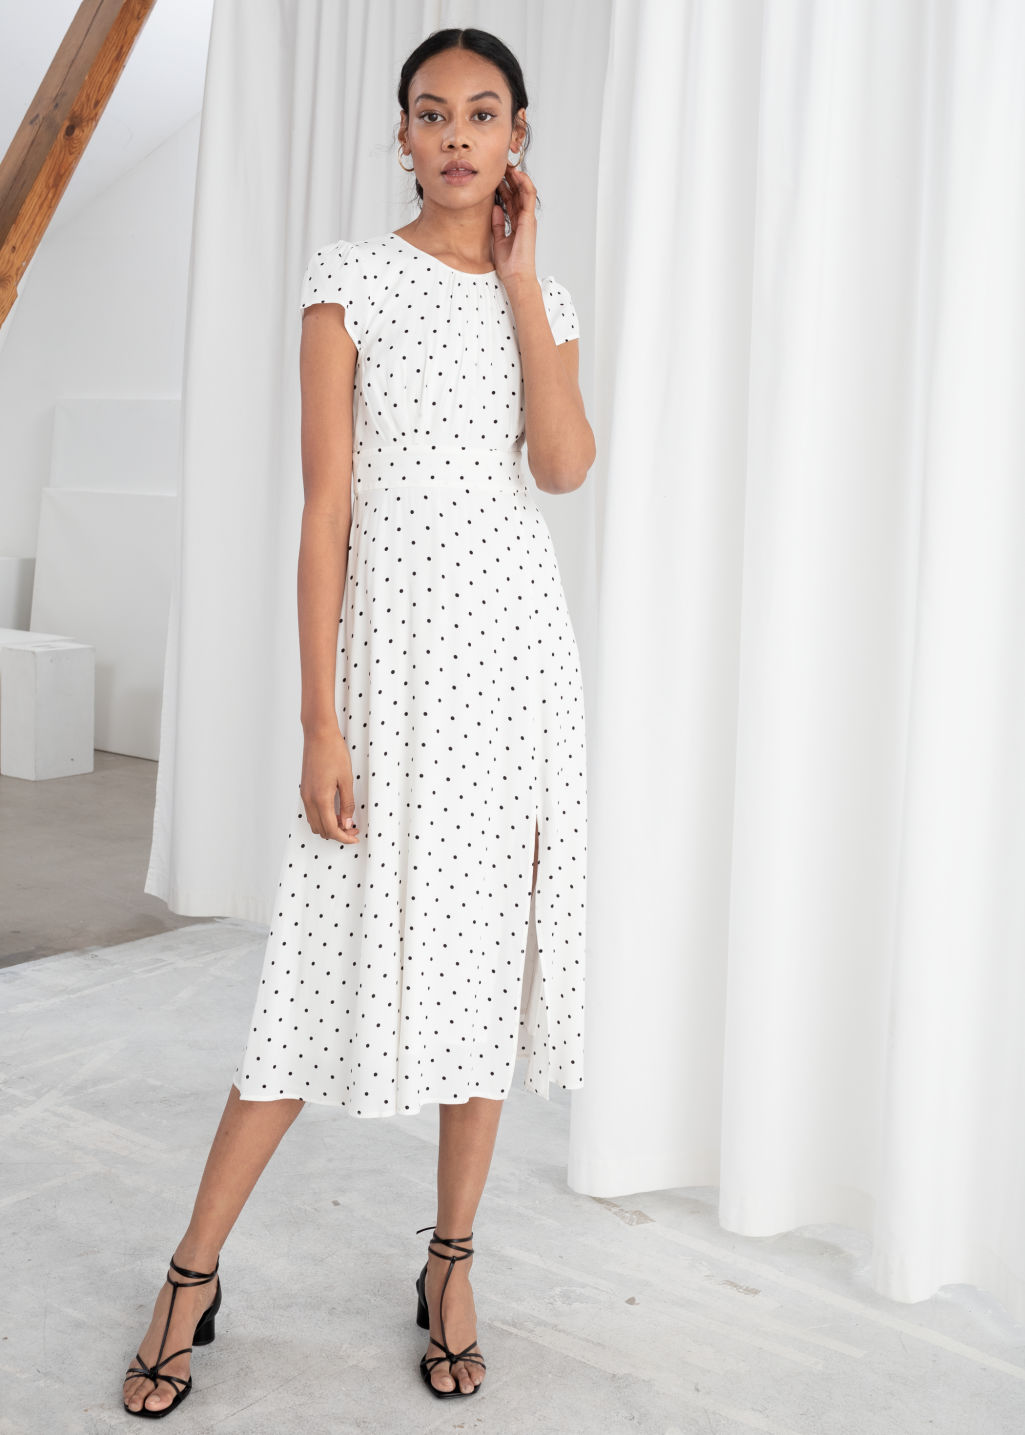 846245250d92e Polka Dot Midi Dress - White - Midi dresses -   Other Stories